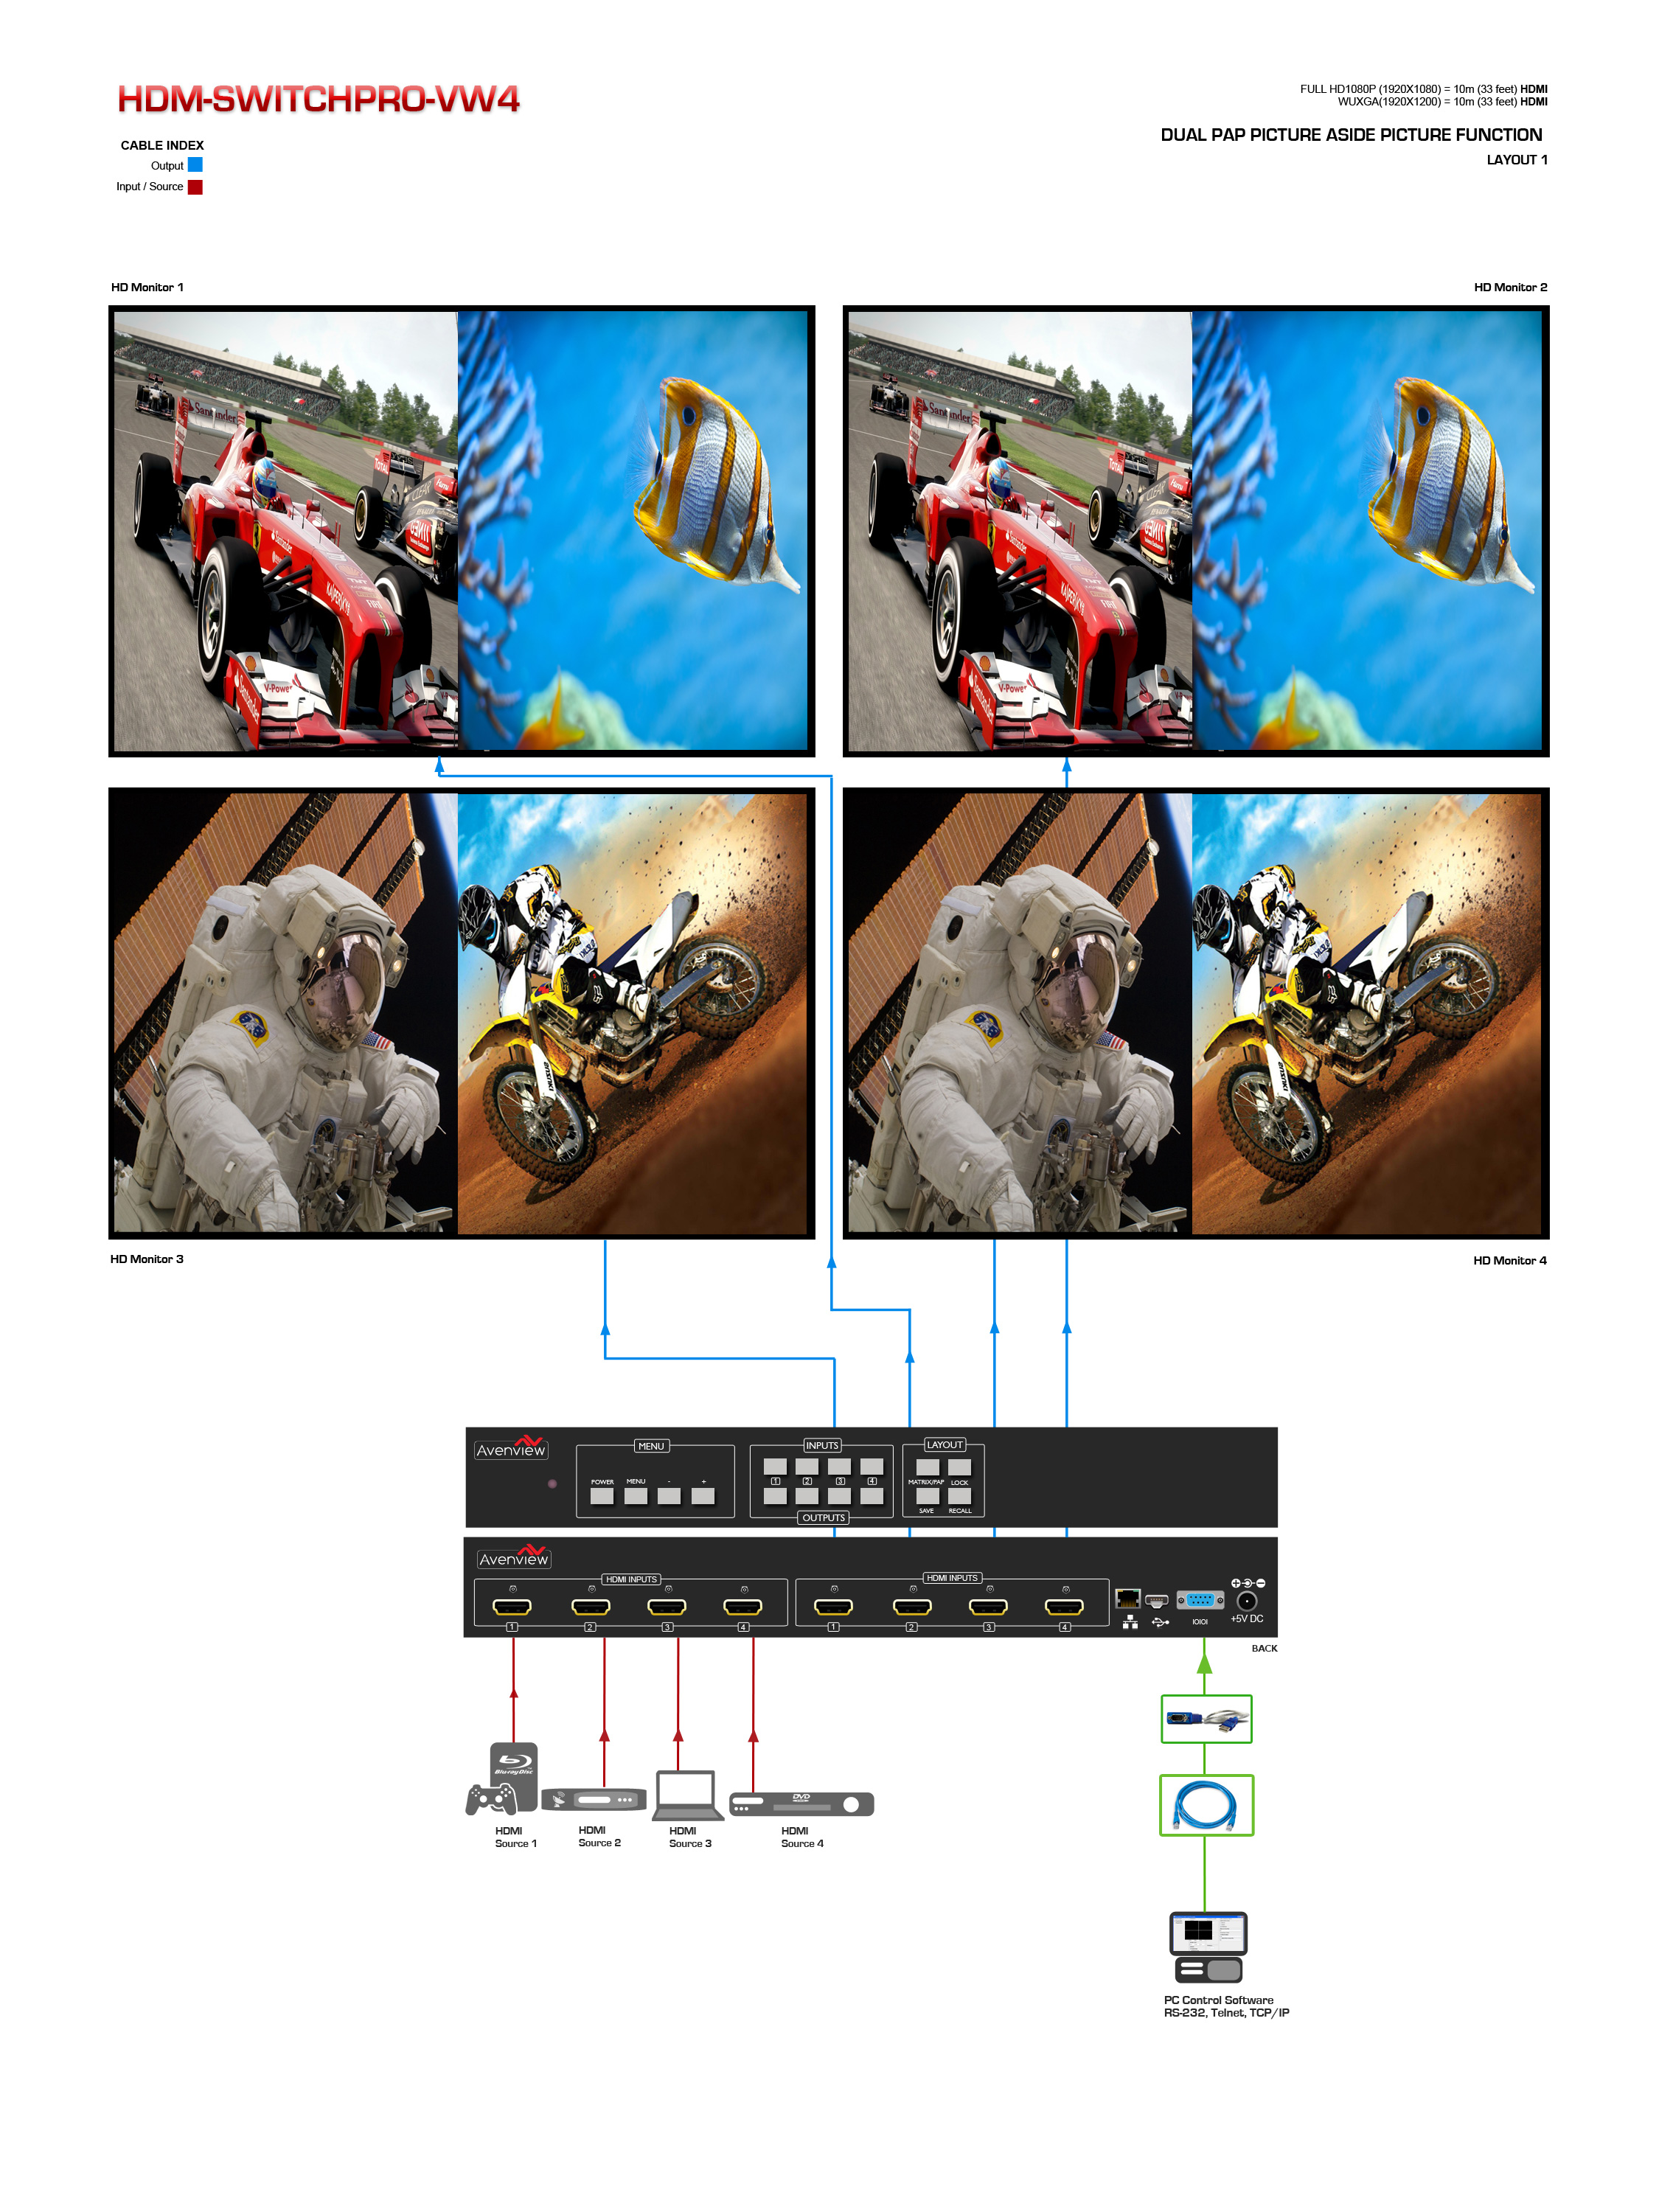 4x4 Hdmi Matrix Switcher With Video Wall Function And